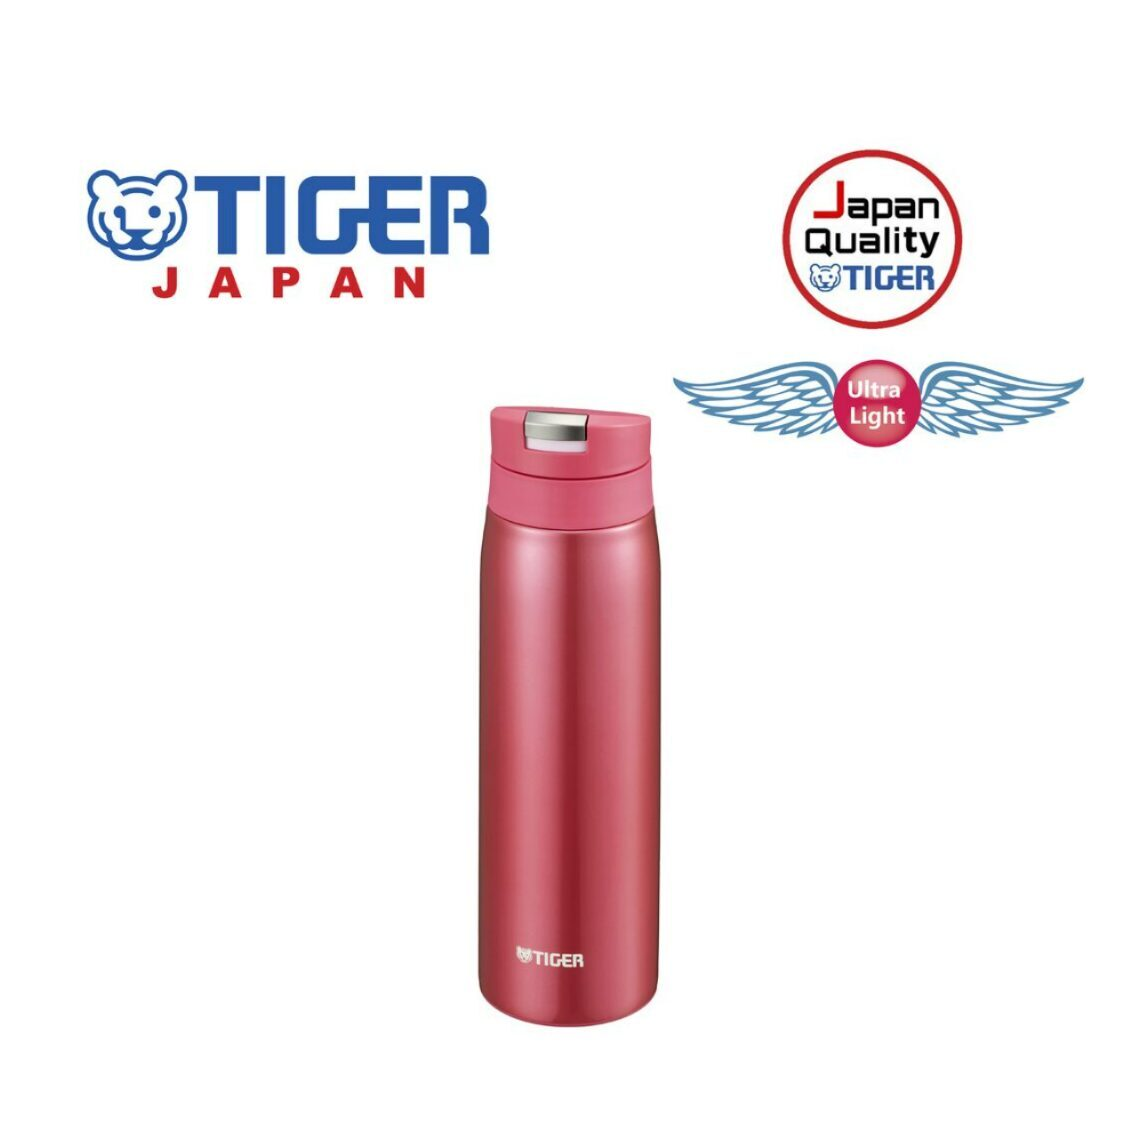 Tiger 500ml Double Stainless Steel Mug MCX-A501PO - Opera Pink